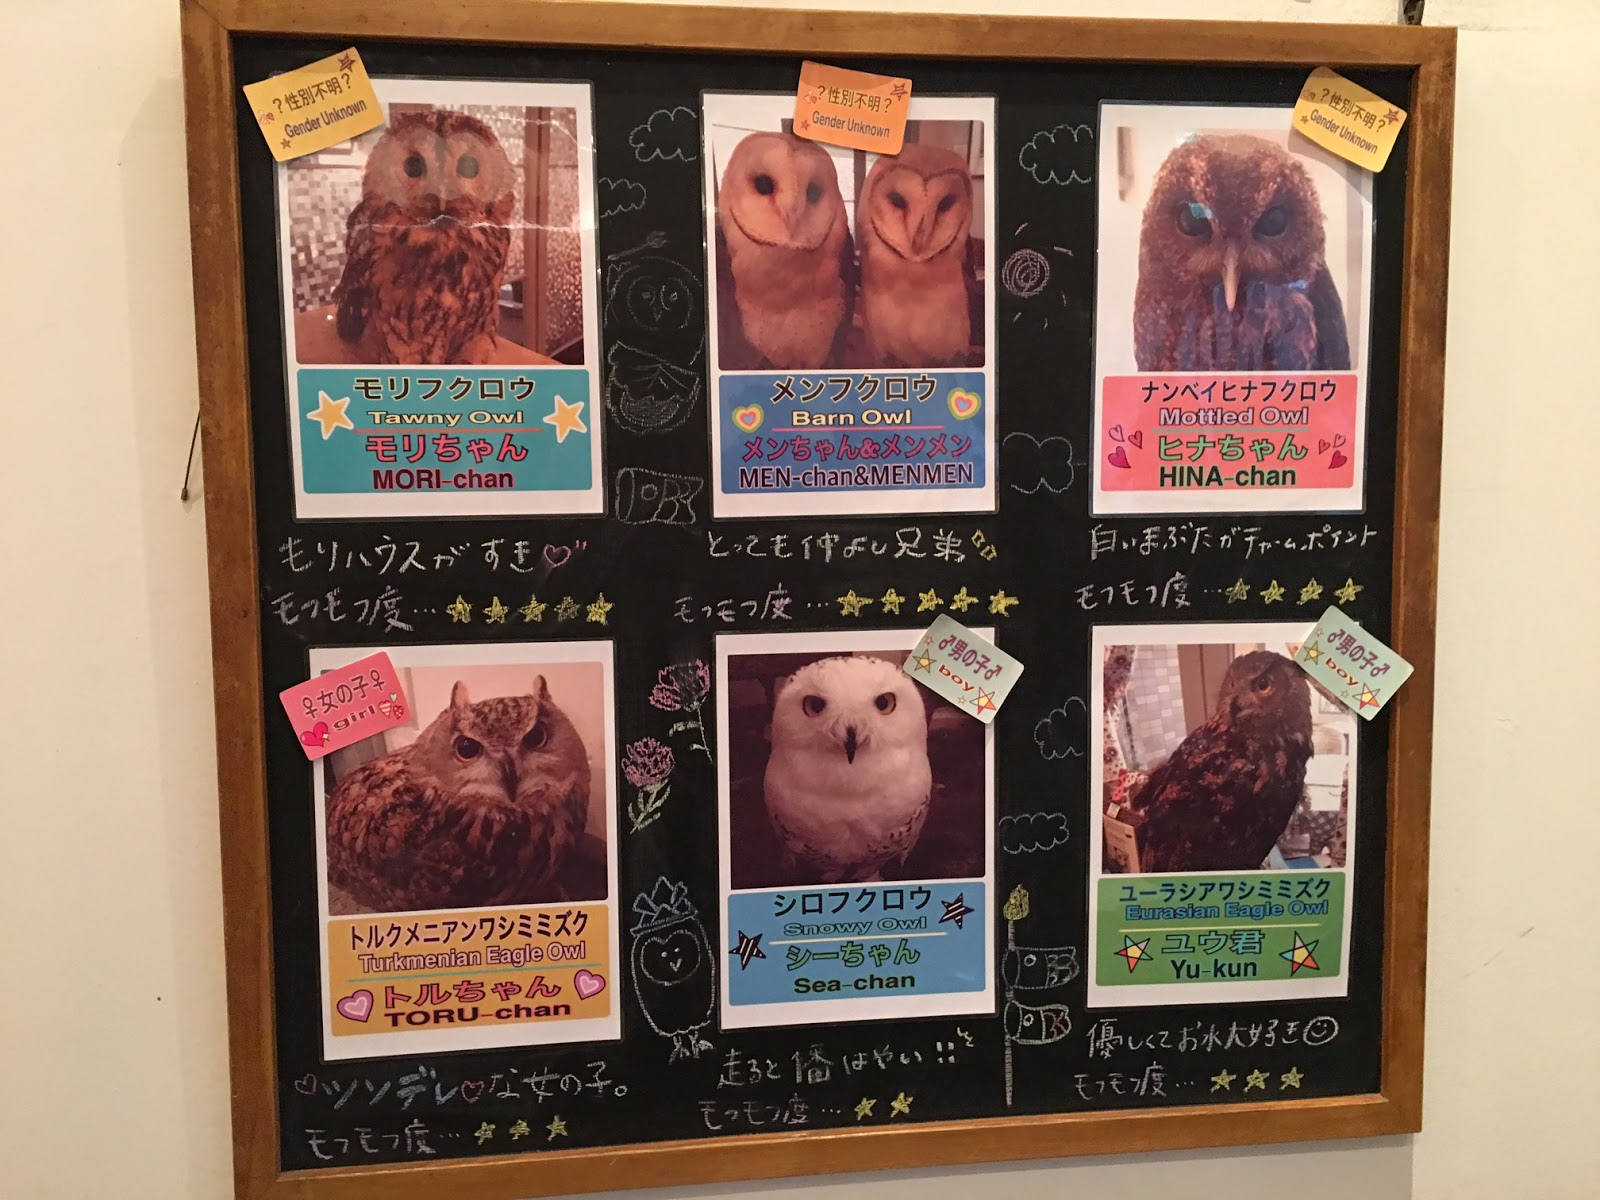 6 Reasons Why You Should Visit THIS Owl Cafe in Tokyo Japan